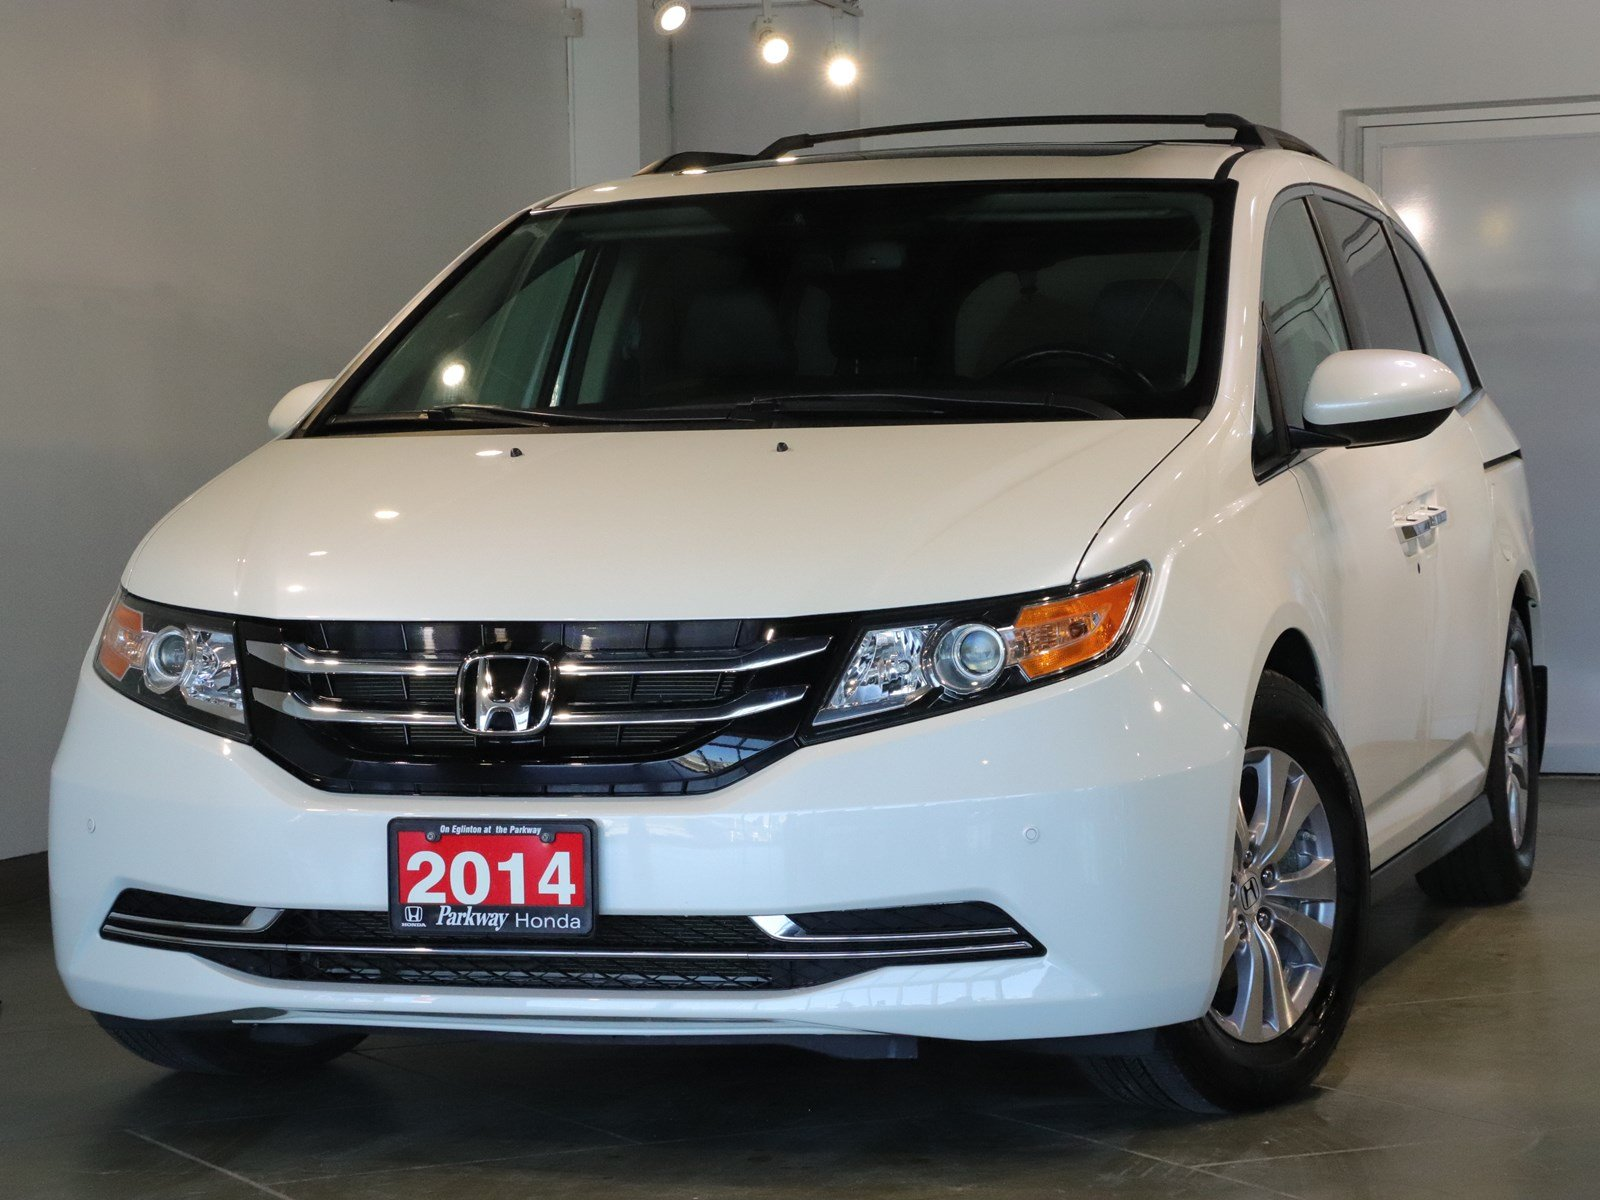 Pre-Owned 2014 Honda Odyssey EXL RES - ONE OWNER ADVENTURE READY WITH BLINDSPOT CAMERA